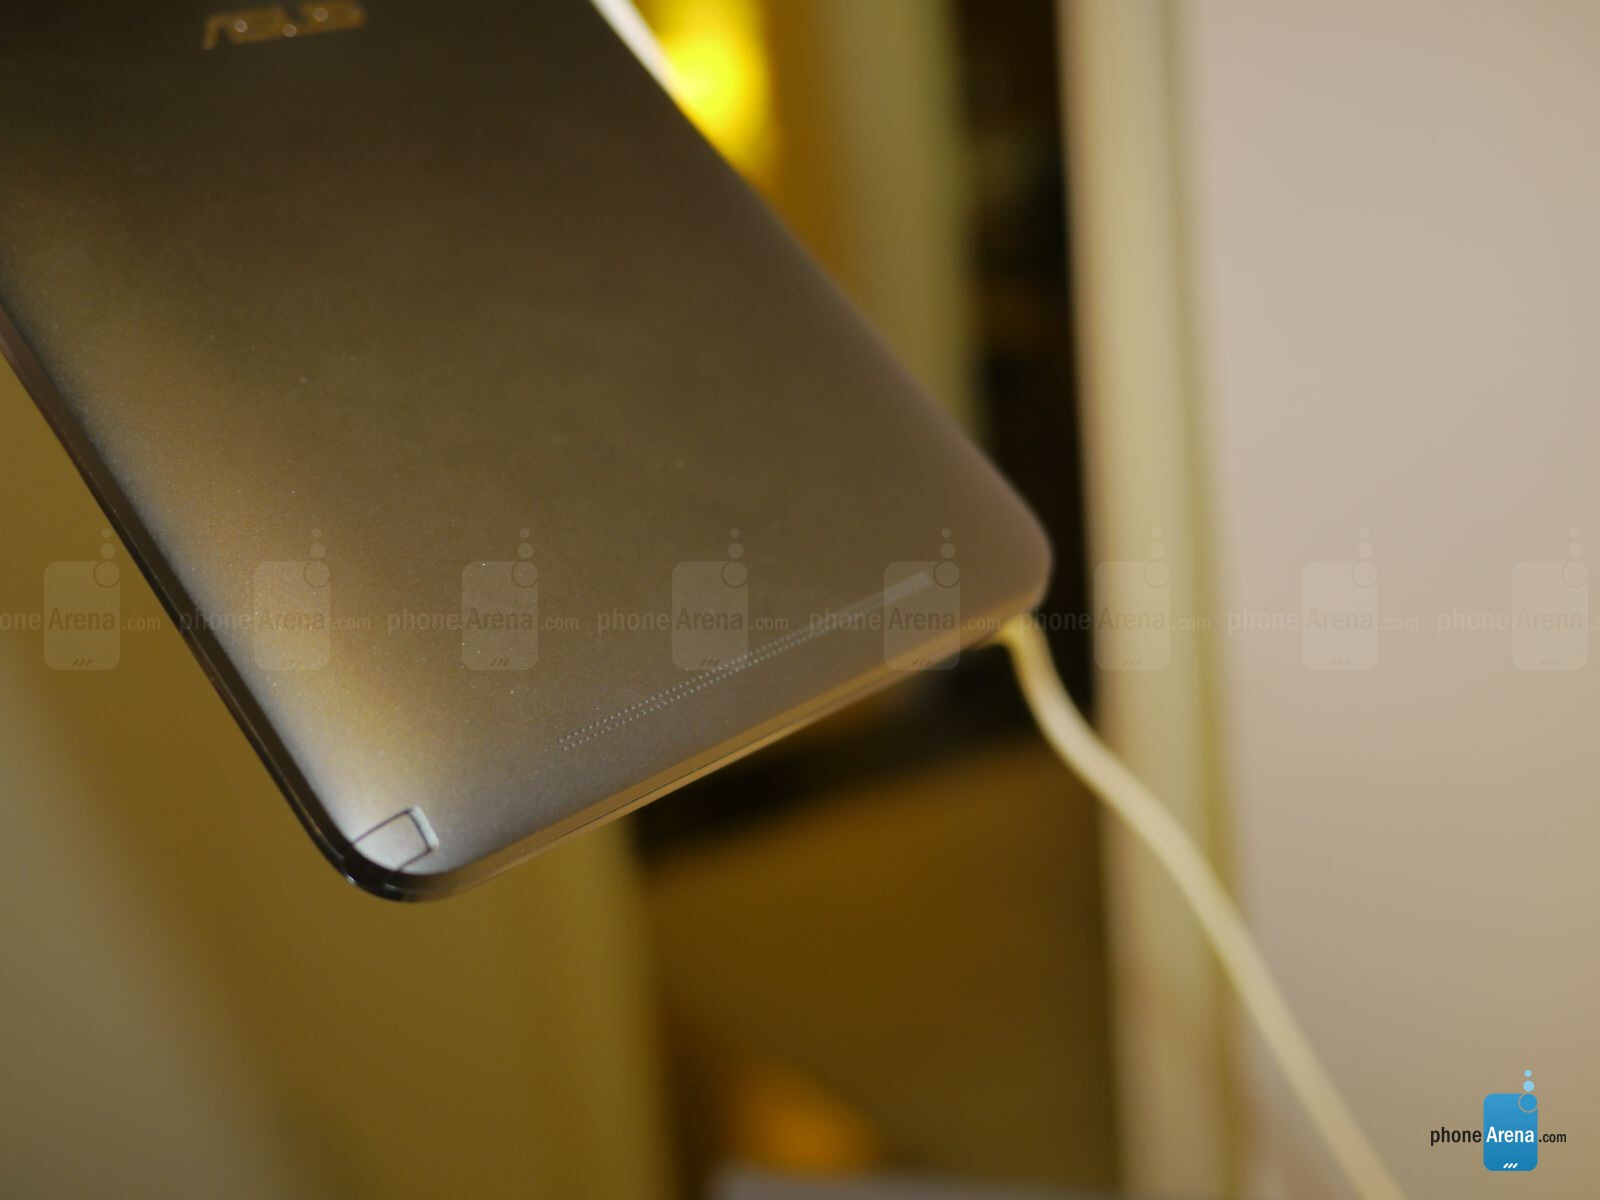 Asus VivoTab Note 8 hands-on: $300 for a Wacom digitizer